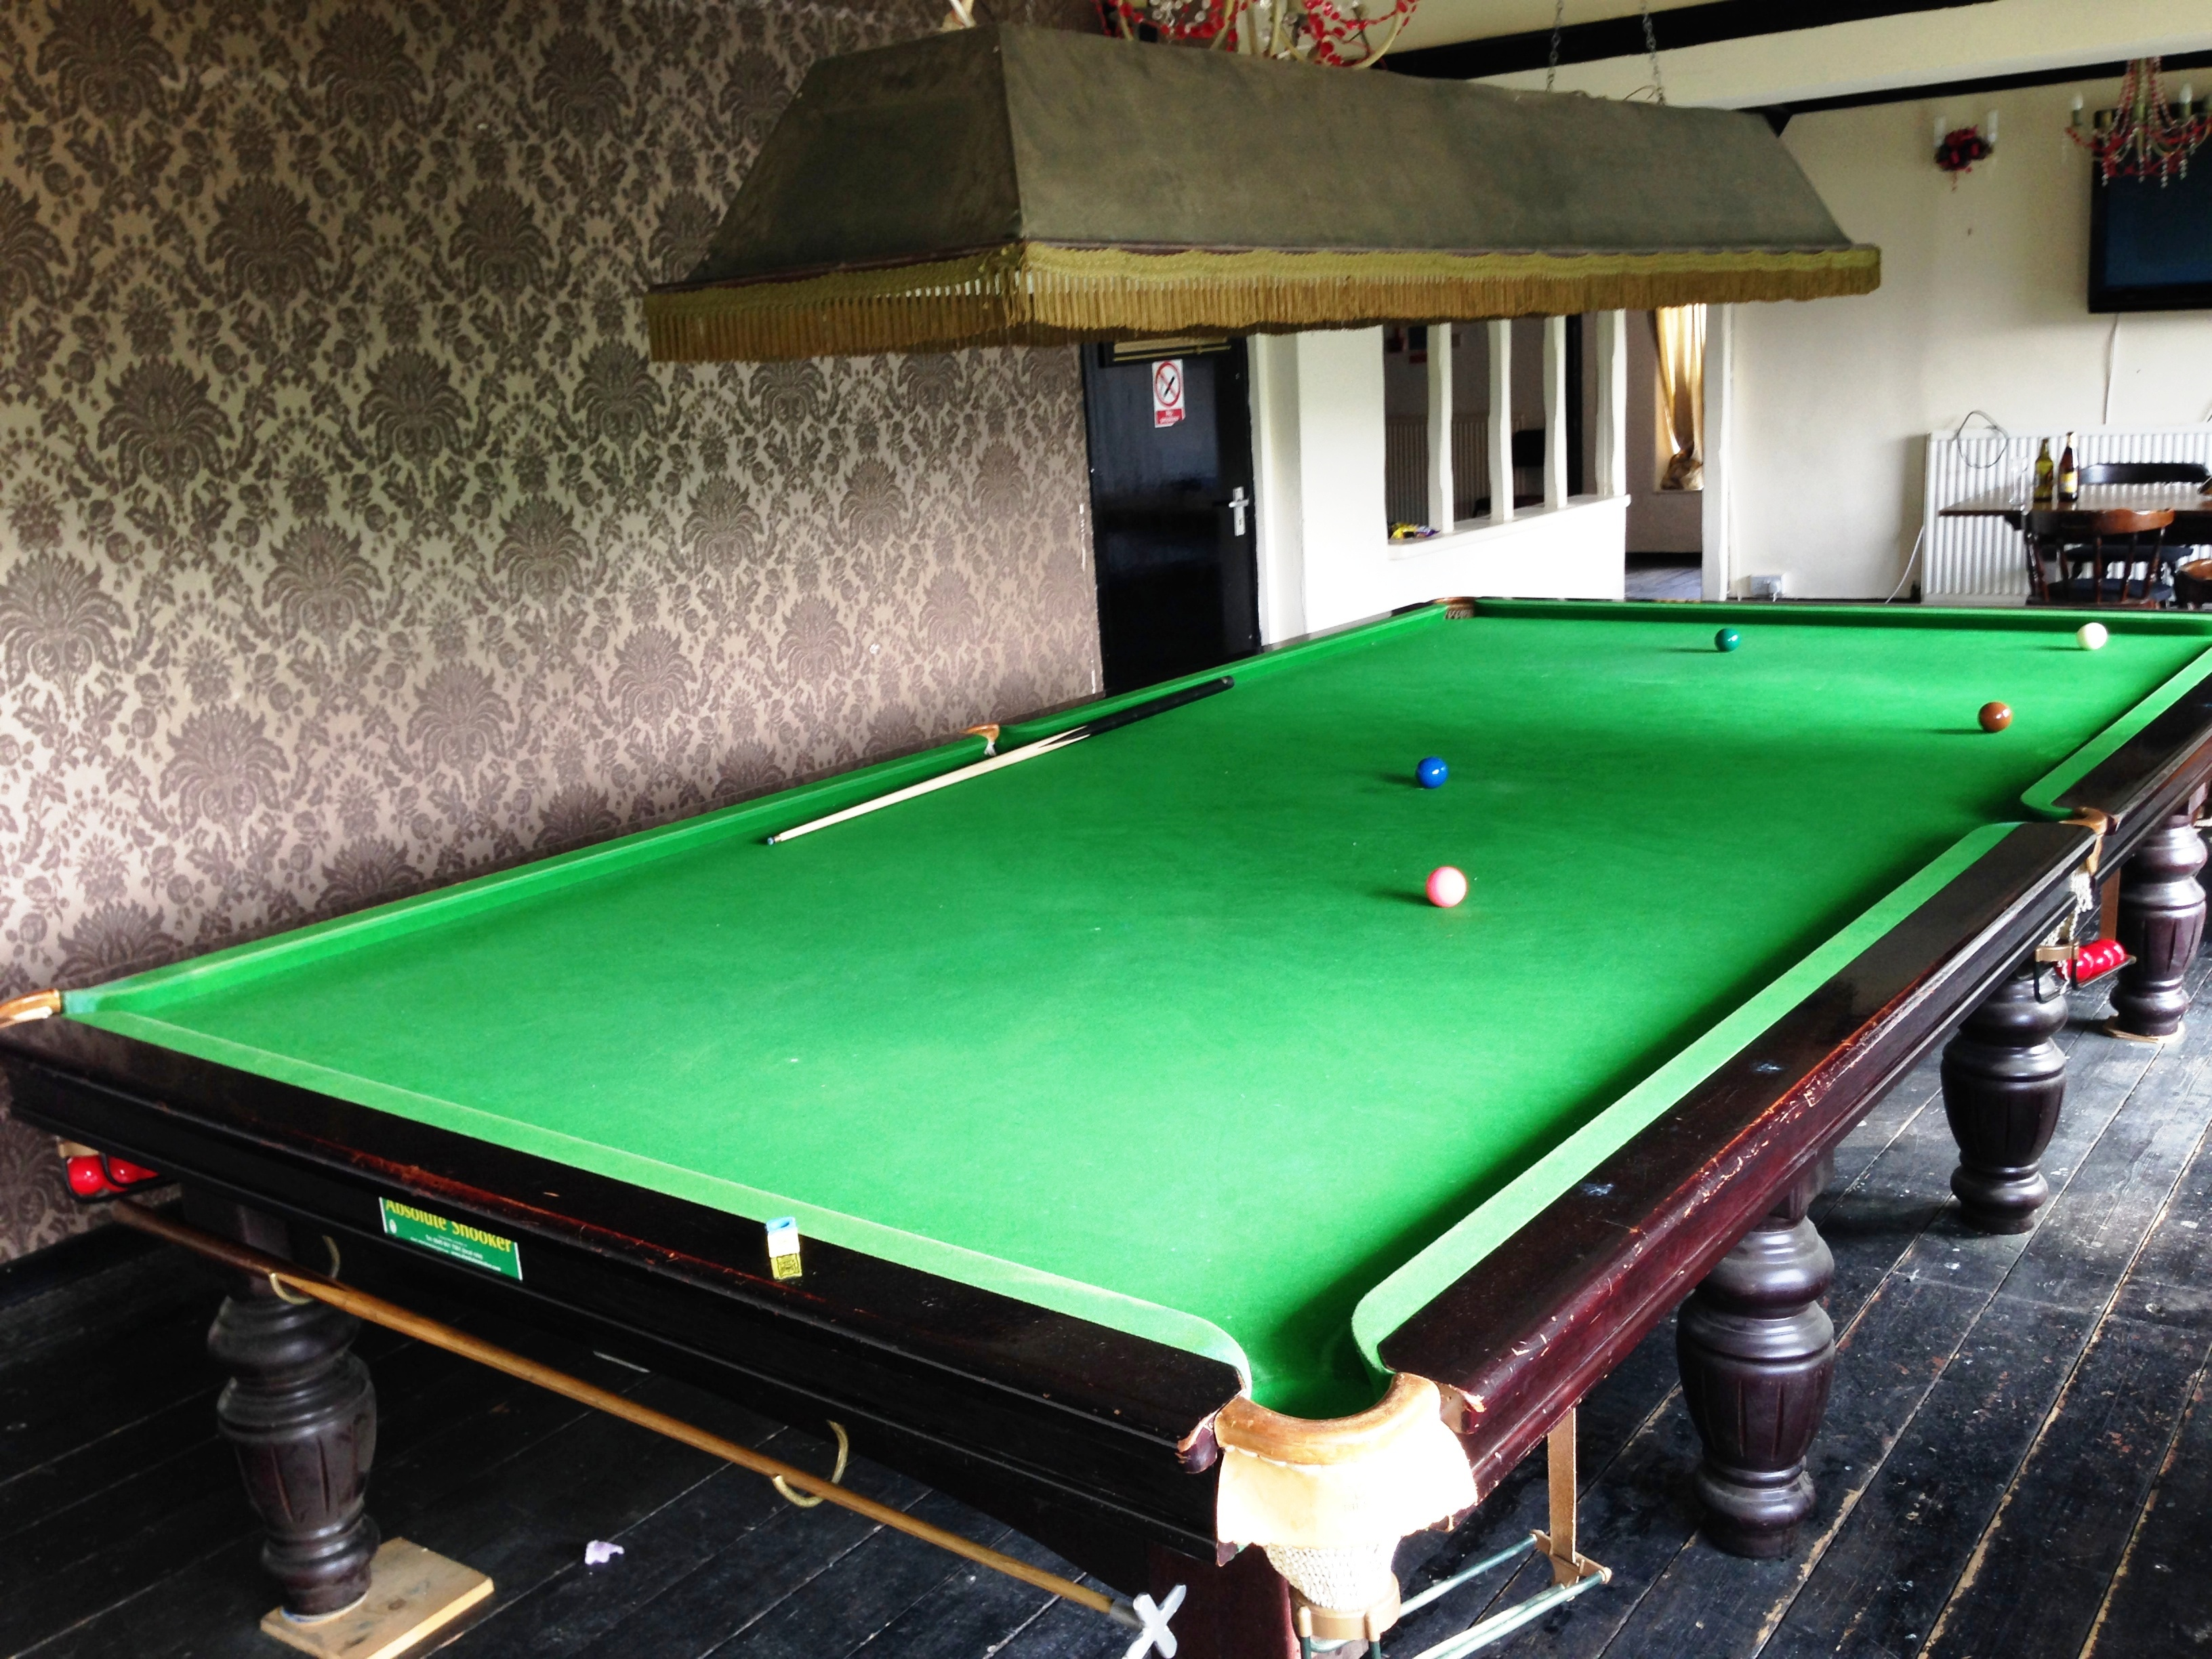 Snooker tables wales, pool tables wales, french covers, pool tables swansea, pool tables pontardawe, pool tables recovering swansea,